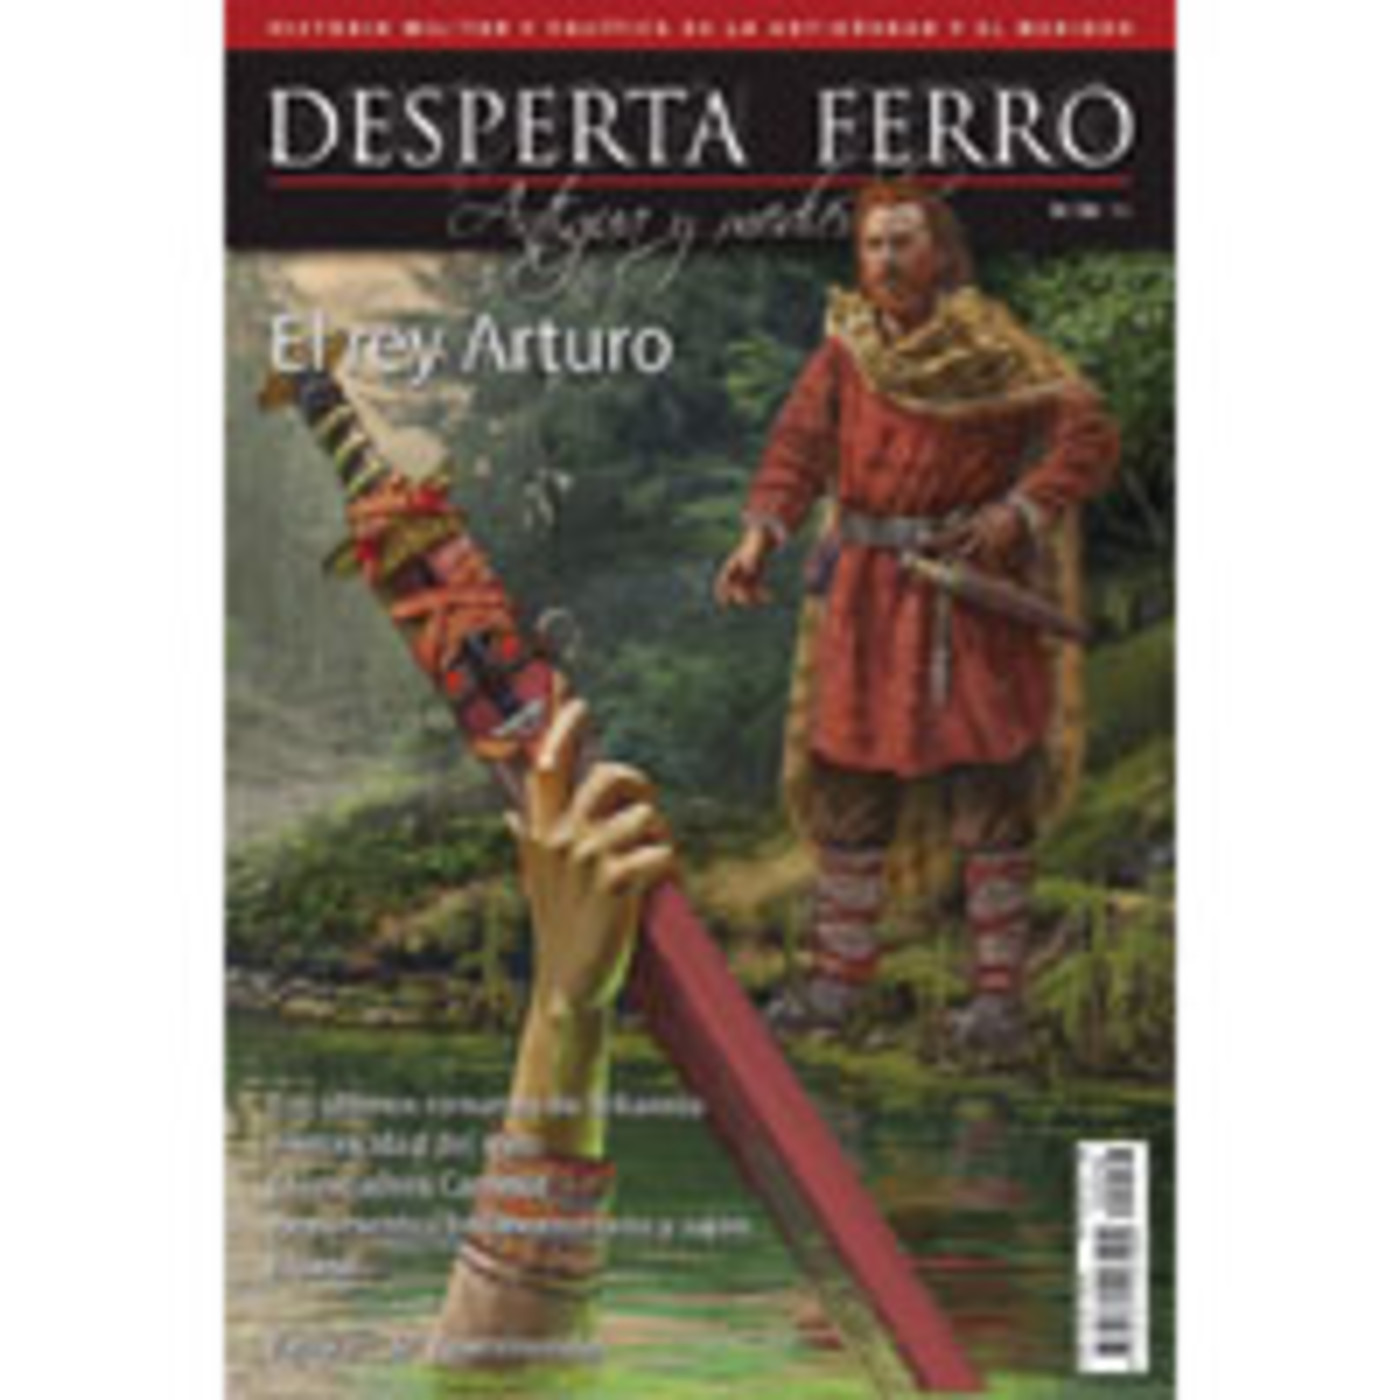 Despertaferro